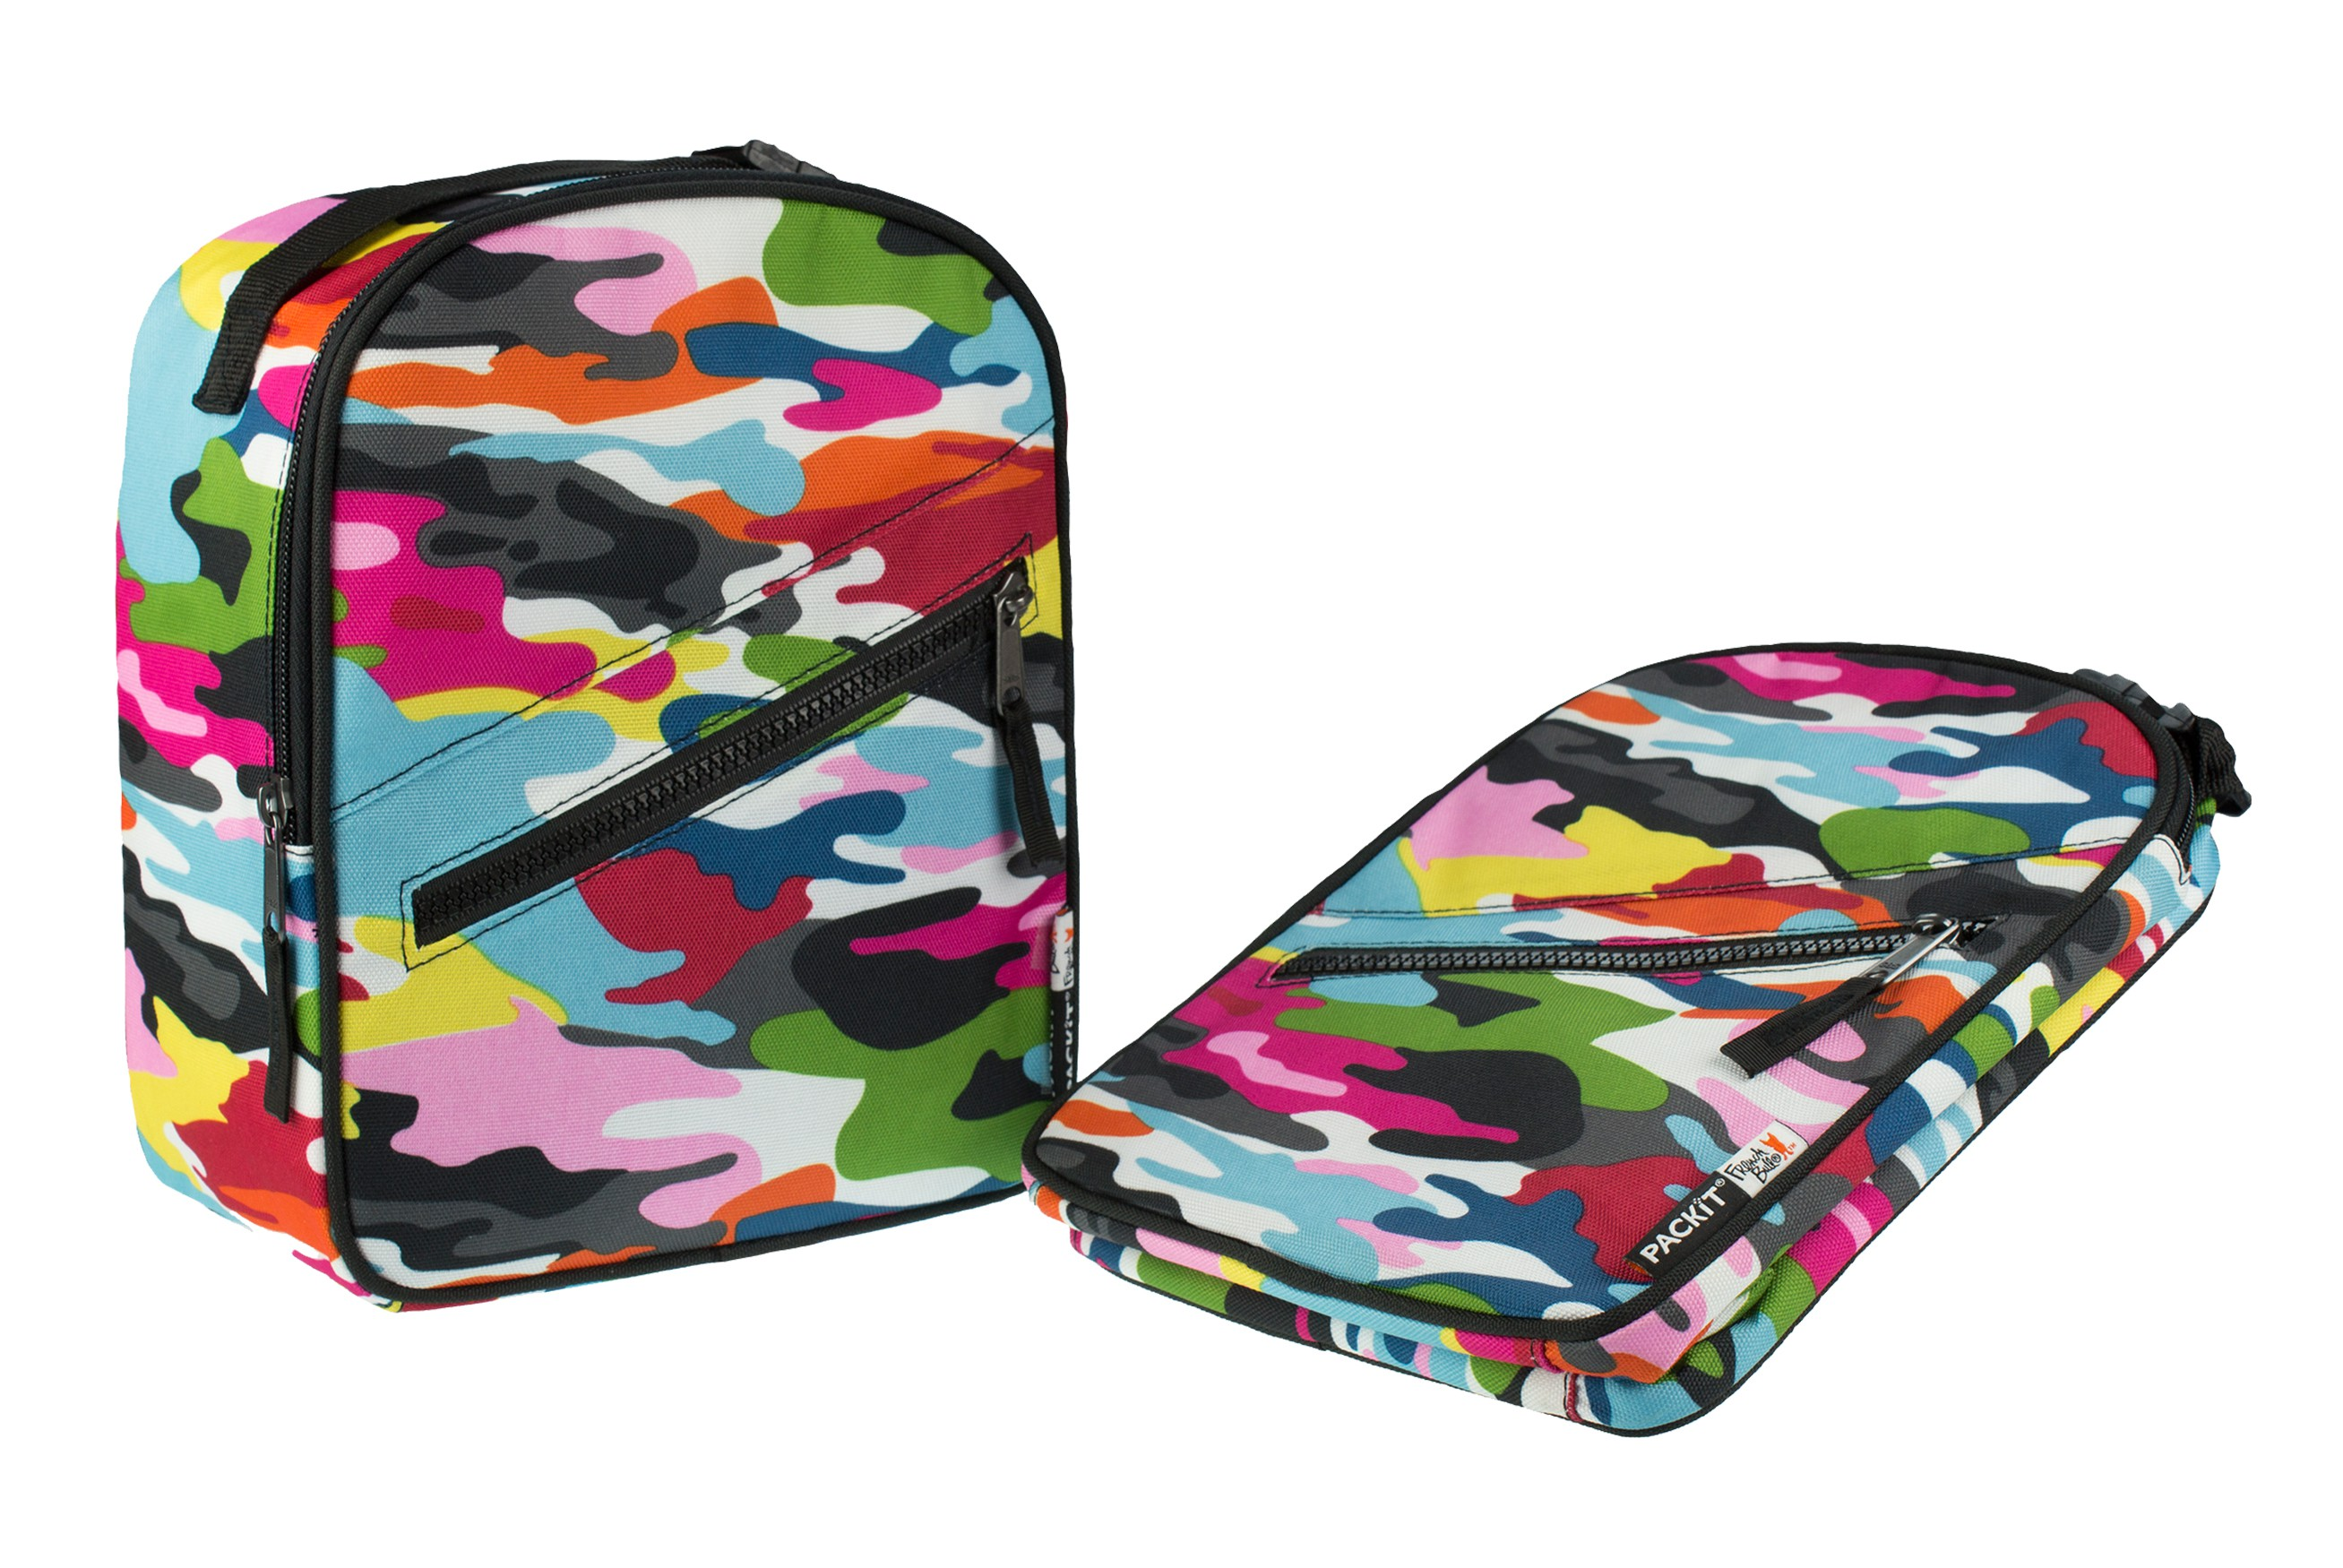 Packit Upright lunch box (2000-0032) - фото 3